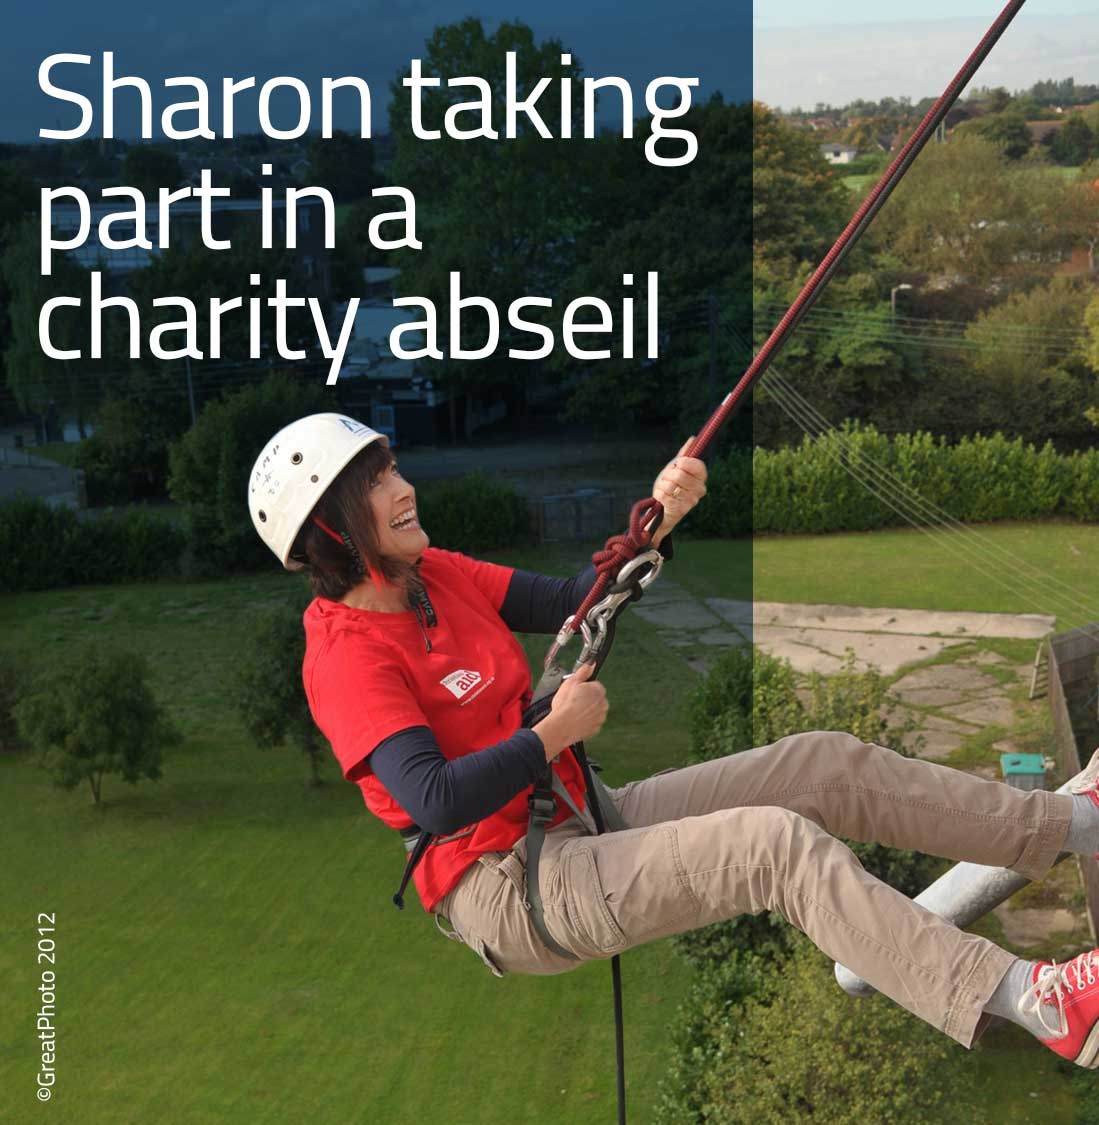 Sharon taking part in a charity abseil.